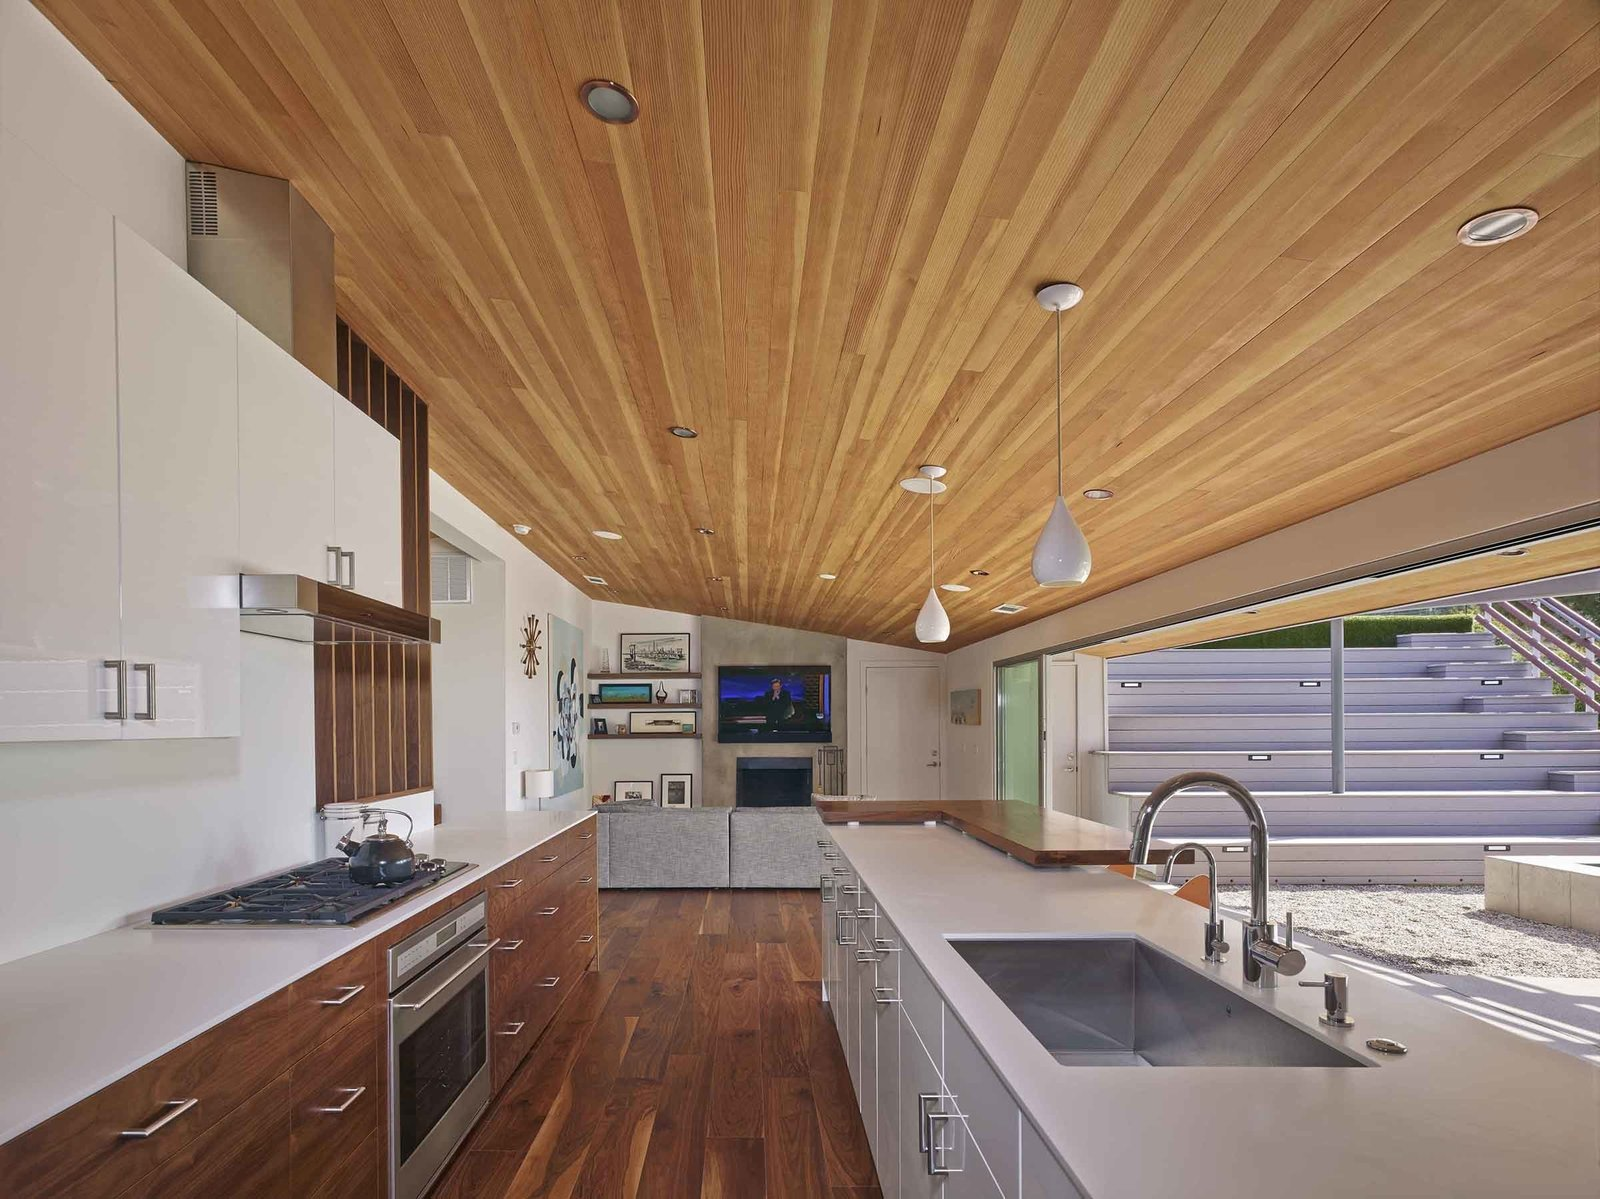 "Kitchen, Wood Cabinet, and Medium Hardwood Floor ""By removing a few interior walls, reconfiguring a couple of others and opening up the kitchen/living/dining areas, we were left with a wonderfully livable floor plan with a great balance of public and private space,"" says Southerland. A large, open galley style kitchen and mirrored planes of wall paneling visually expand the home's interior perspective.  Photo 4 of 6 in A Mid-Century Modern Makeover in Los Angeles"